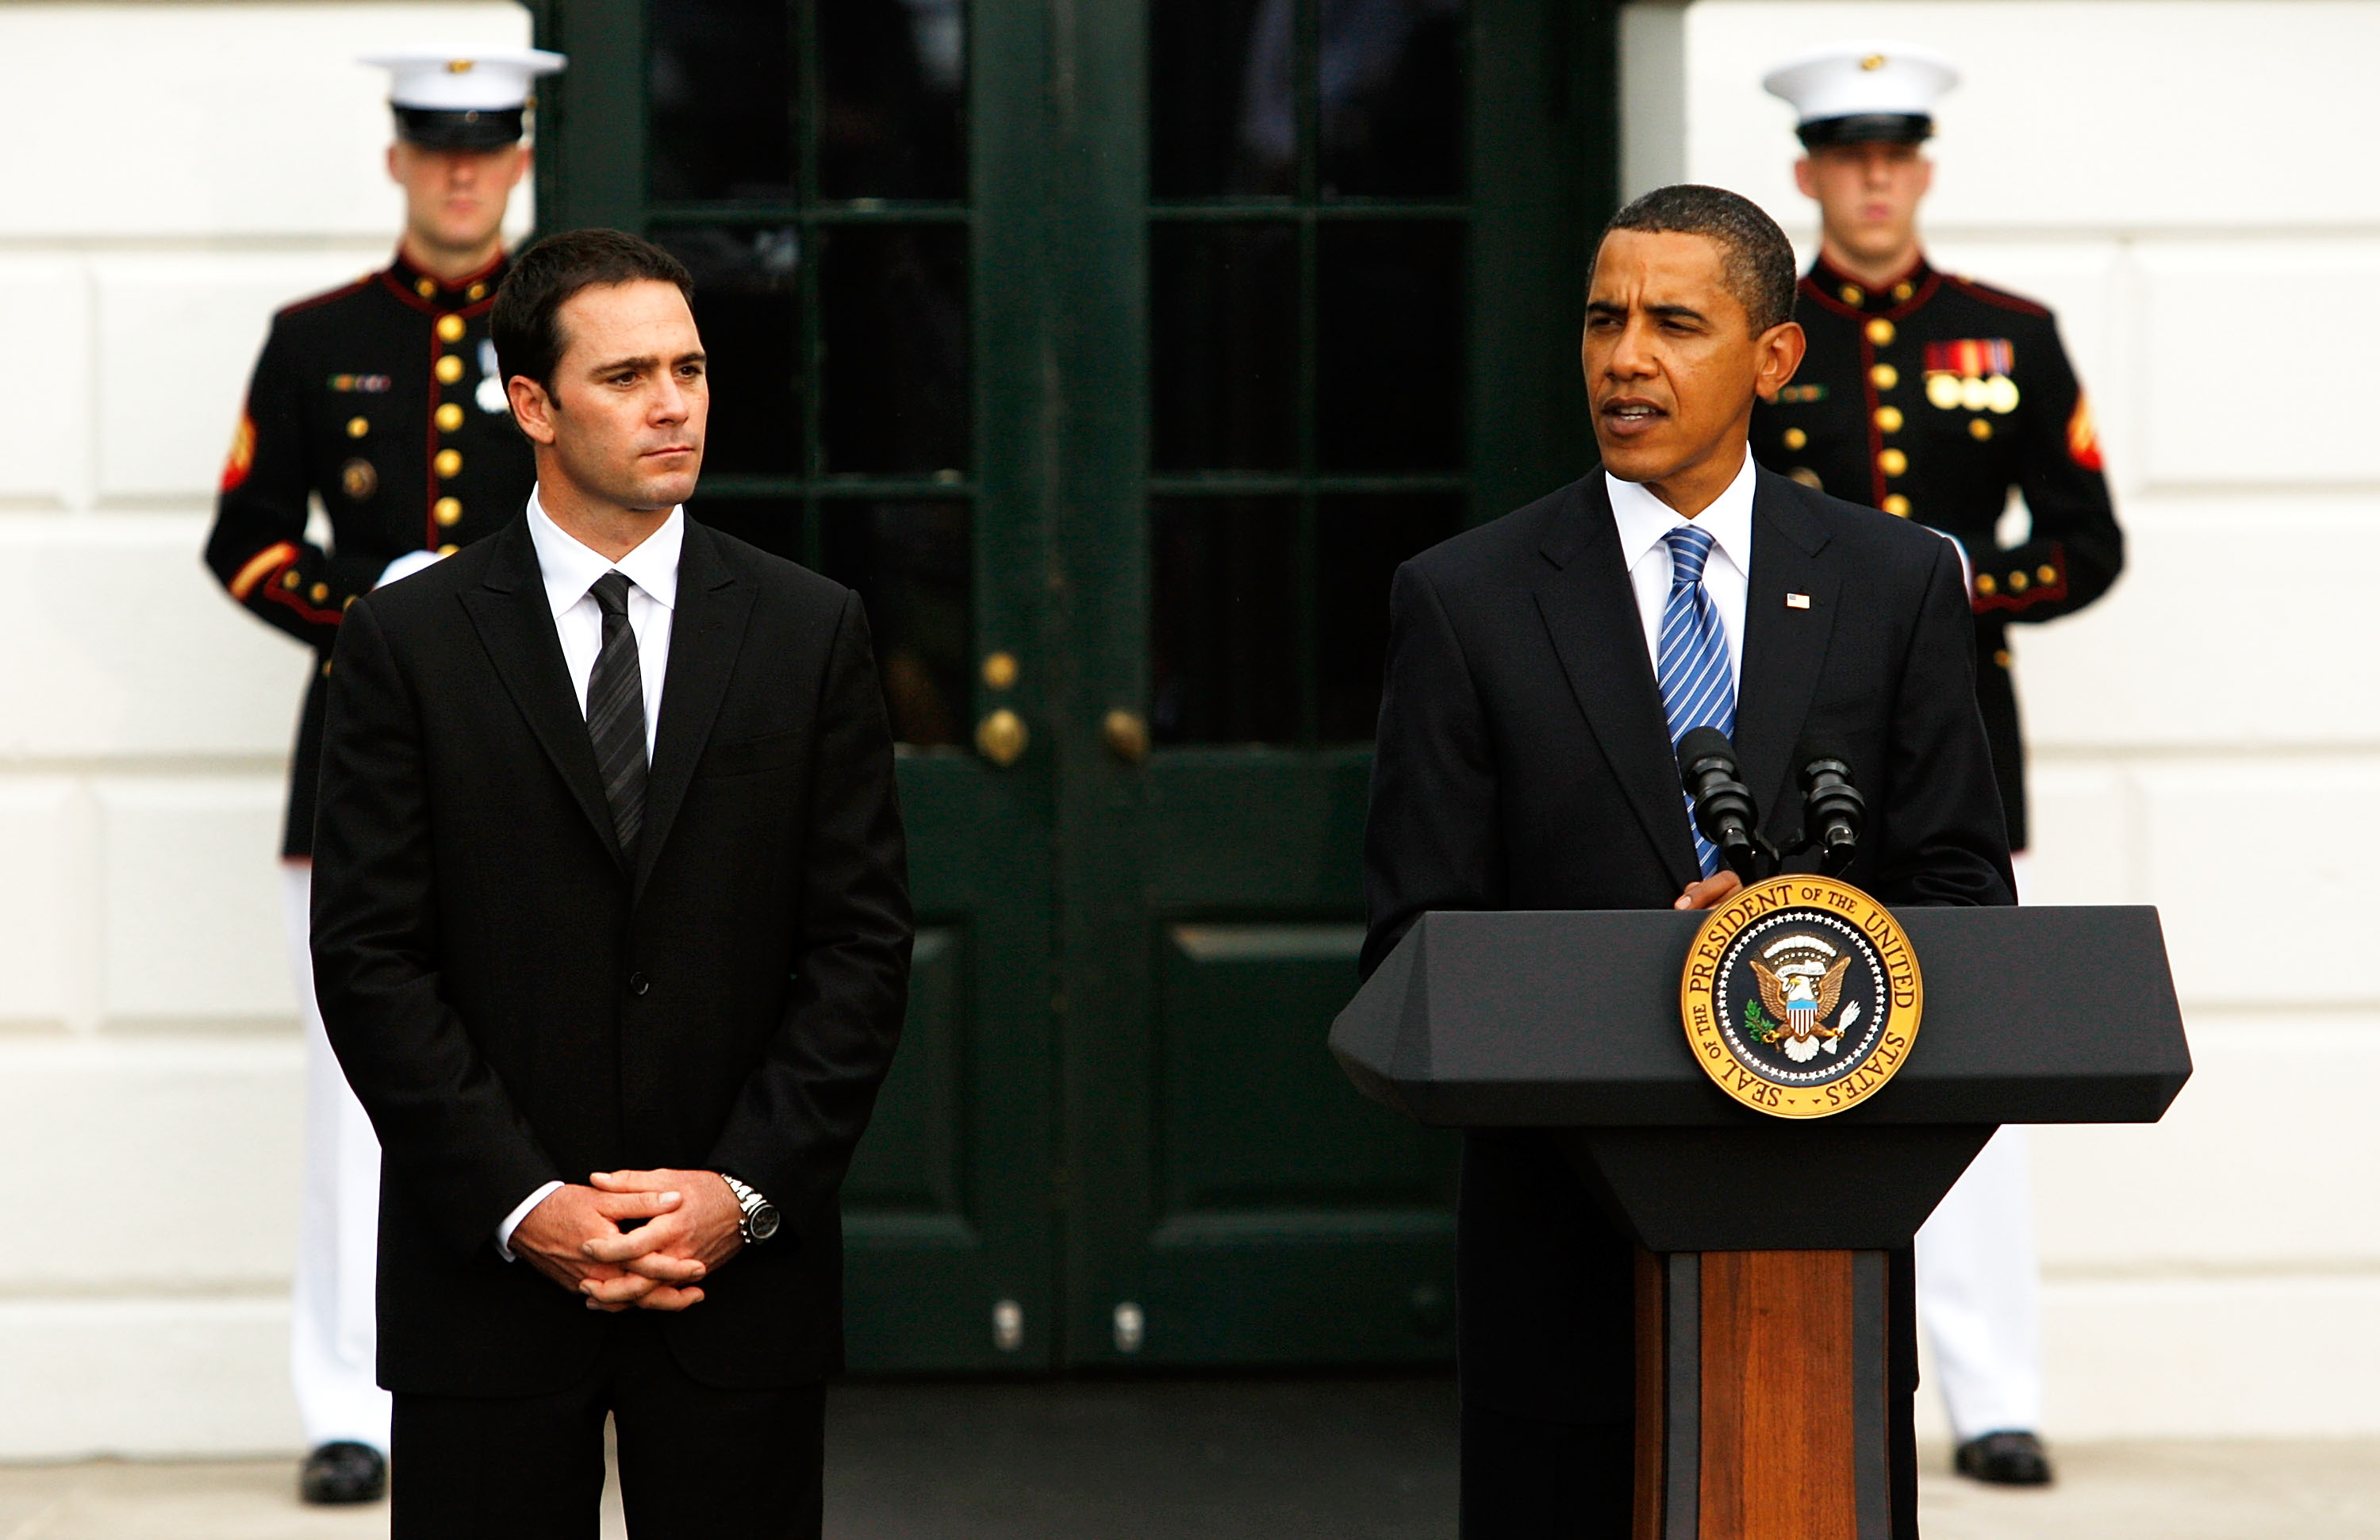 Jimmie Johnson knows pressure and his four straight NASCAR titles earned praise from President Obama.